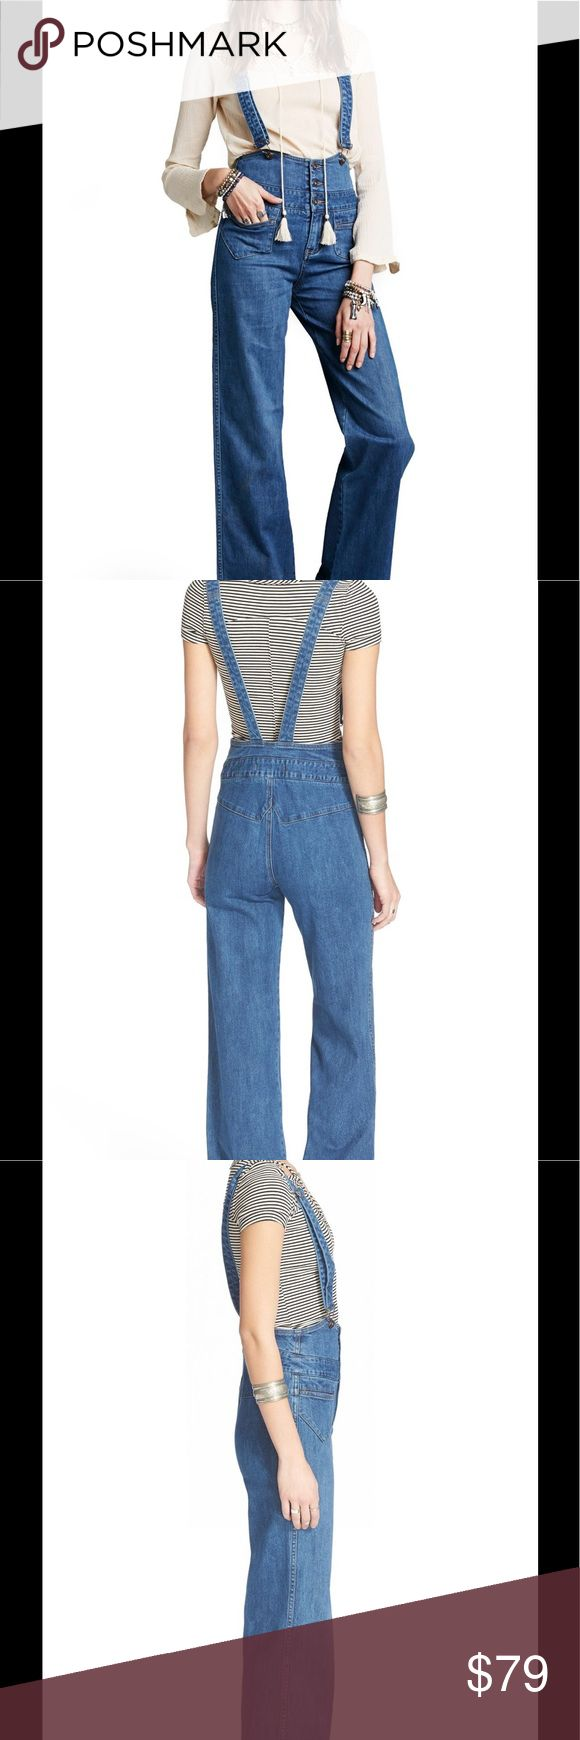 "🆕 Free People Penrose flare overalls About This Item   Details  Embrace the '70s trend in flare-leg overalls with a figure-defining high-rise waistline and throwback-inspired patch pockets.   Snug fit; will stretch with wear.   - 46"" center front length; 34"" inseam; 22"" leg opening  - Adjustable straps; button fly closure  - Front patch pockets  - 96% cotton, 3% polyester, 1% spandex  - Machine wash cold, tumble dry low  True to size. 26=2   Brand new with tag. Retail price $148.  Smoke…"